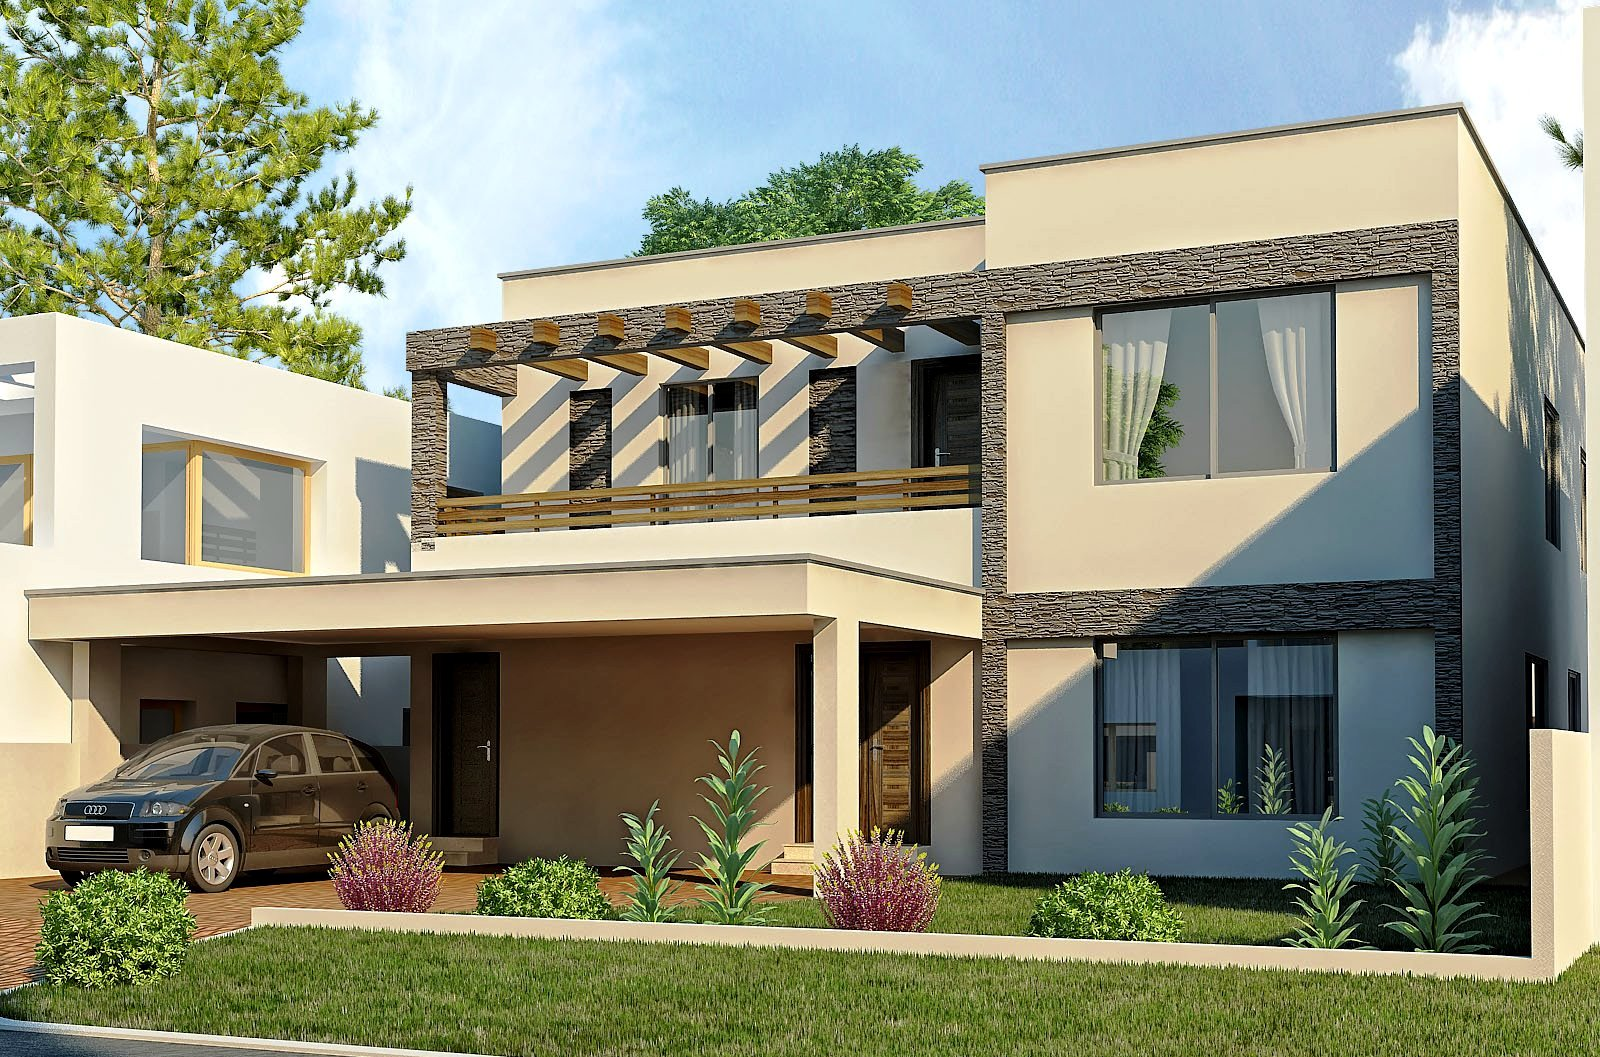 new home designs latest modern homes exterior designs views On exterior home design ideas